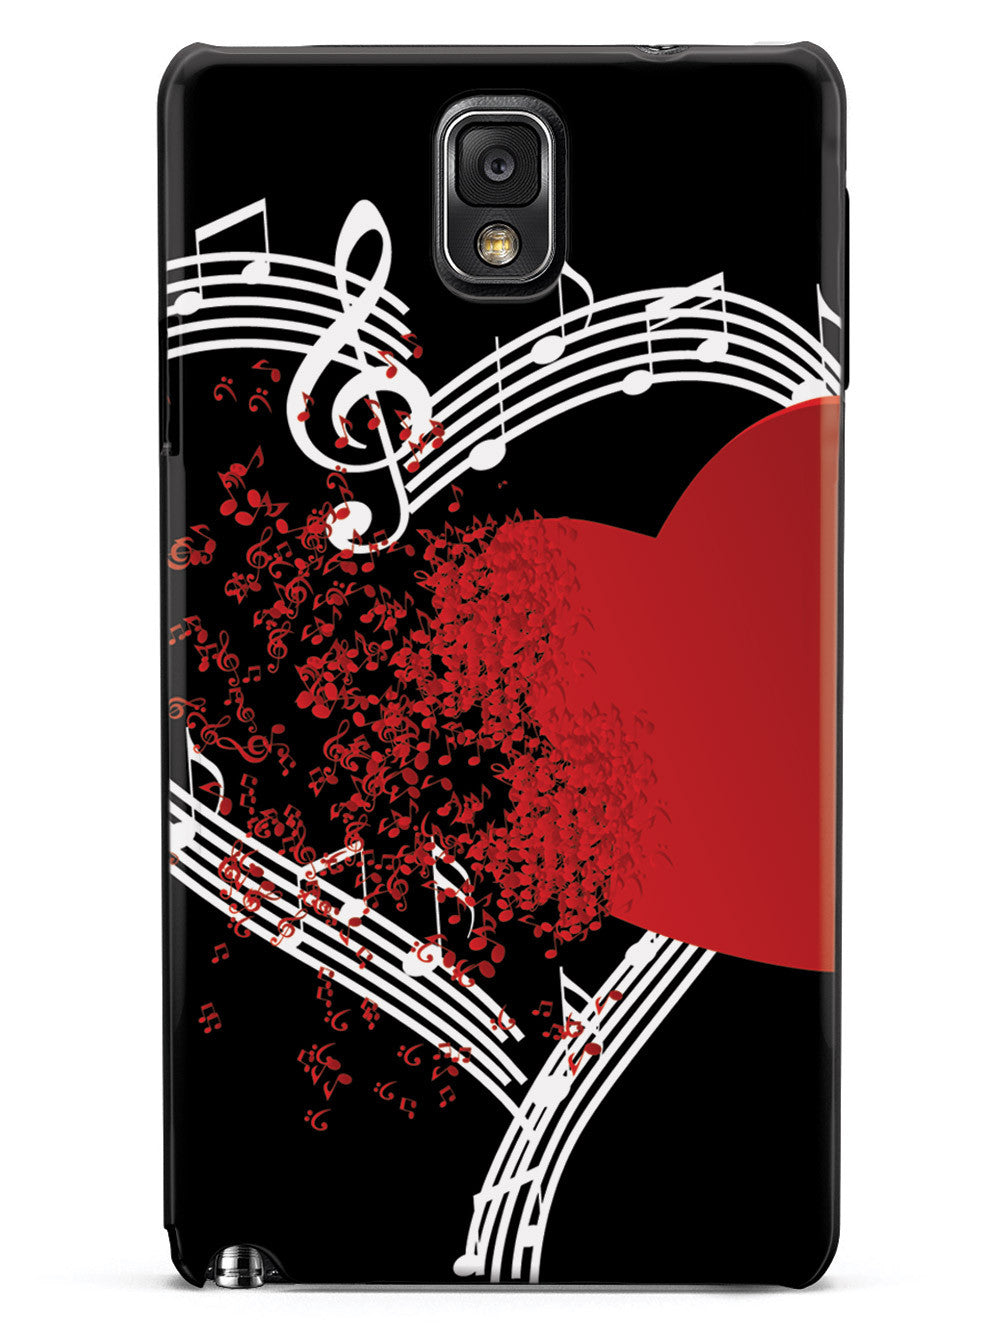 For the Love of Music - Black Case